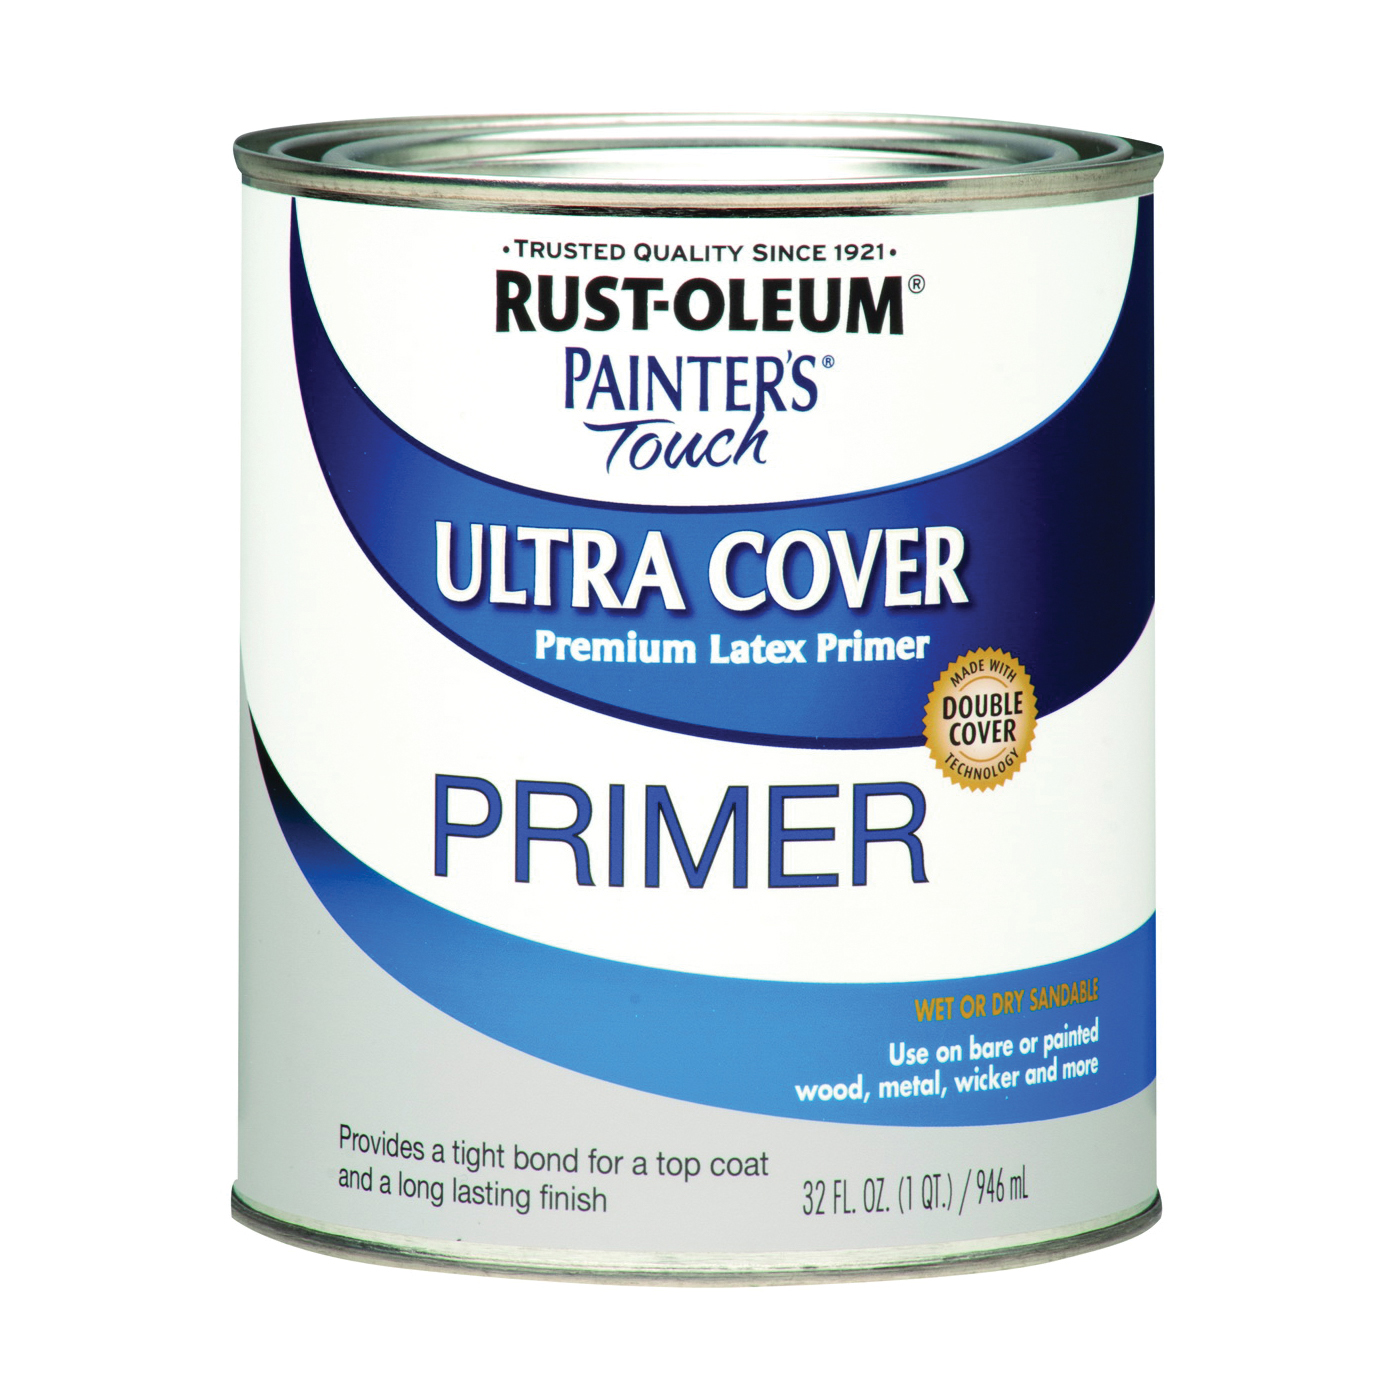 Picture of RUST-OLEUM PAINTER'S Touch 1980502 Brush-On Primer, Flat, Gray, 0.5 pt, Can